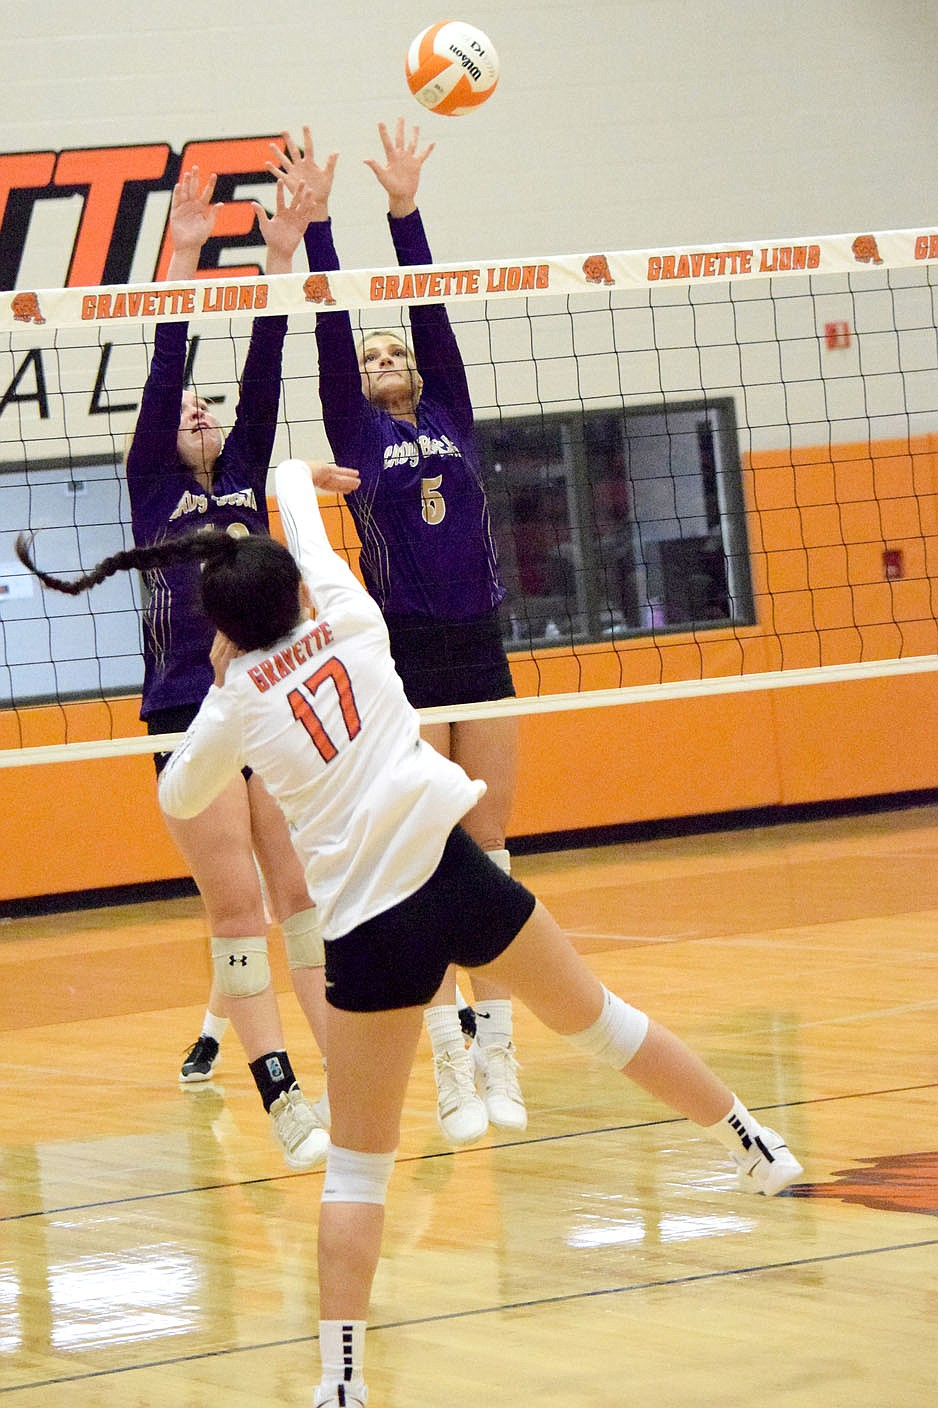 Westside Eagle Observer/MIKE ECKELS Ella Pinches (17) smashes the ball past a pair of Lady Bobcat defenders for a Lady Lion point during the third set of the Gravette-Berryville varsity volleyball match in Gravette Thursday night. The Lady Lions took the win in three straight sets over the Lady Bobcats.